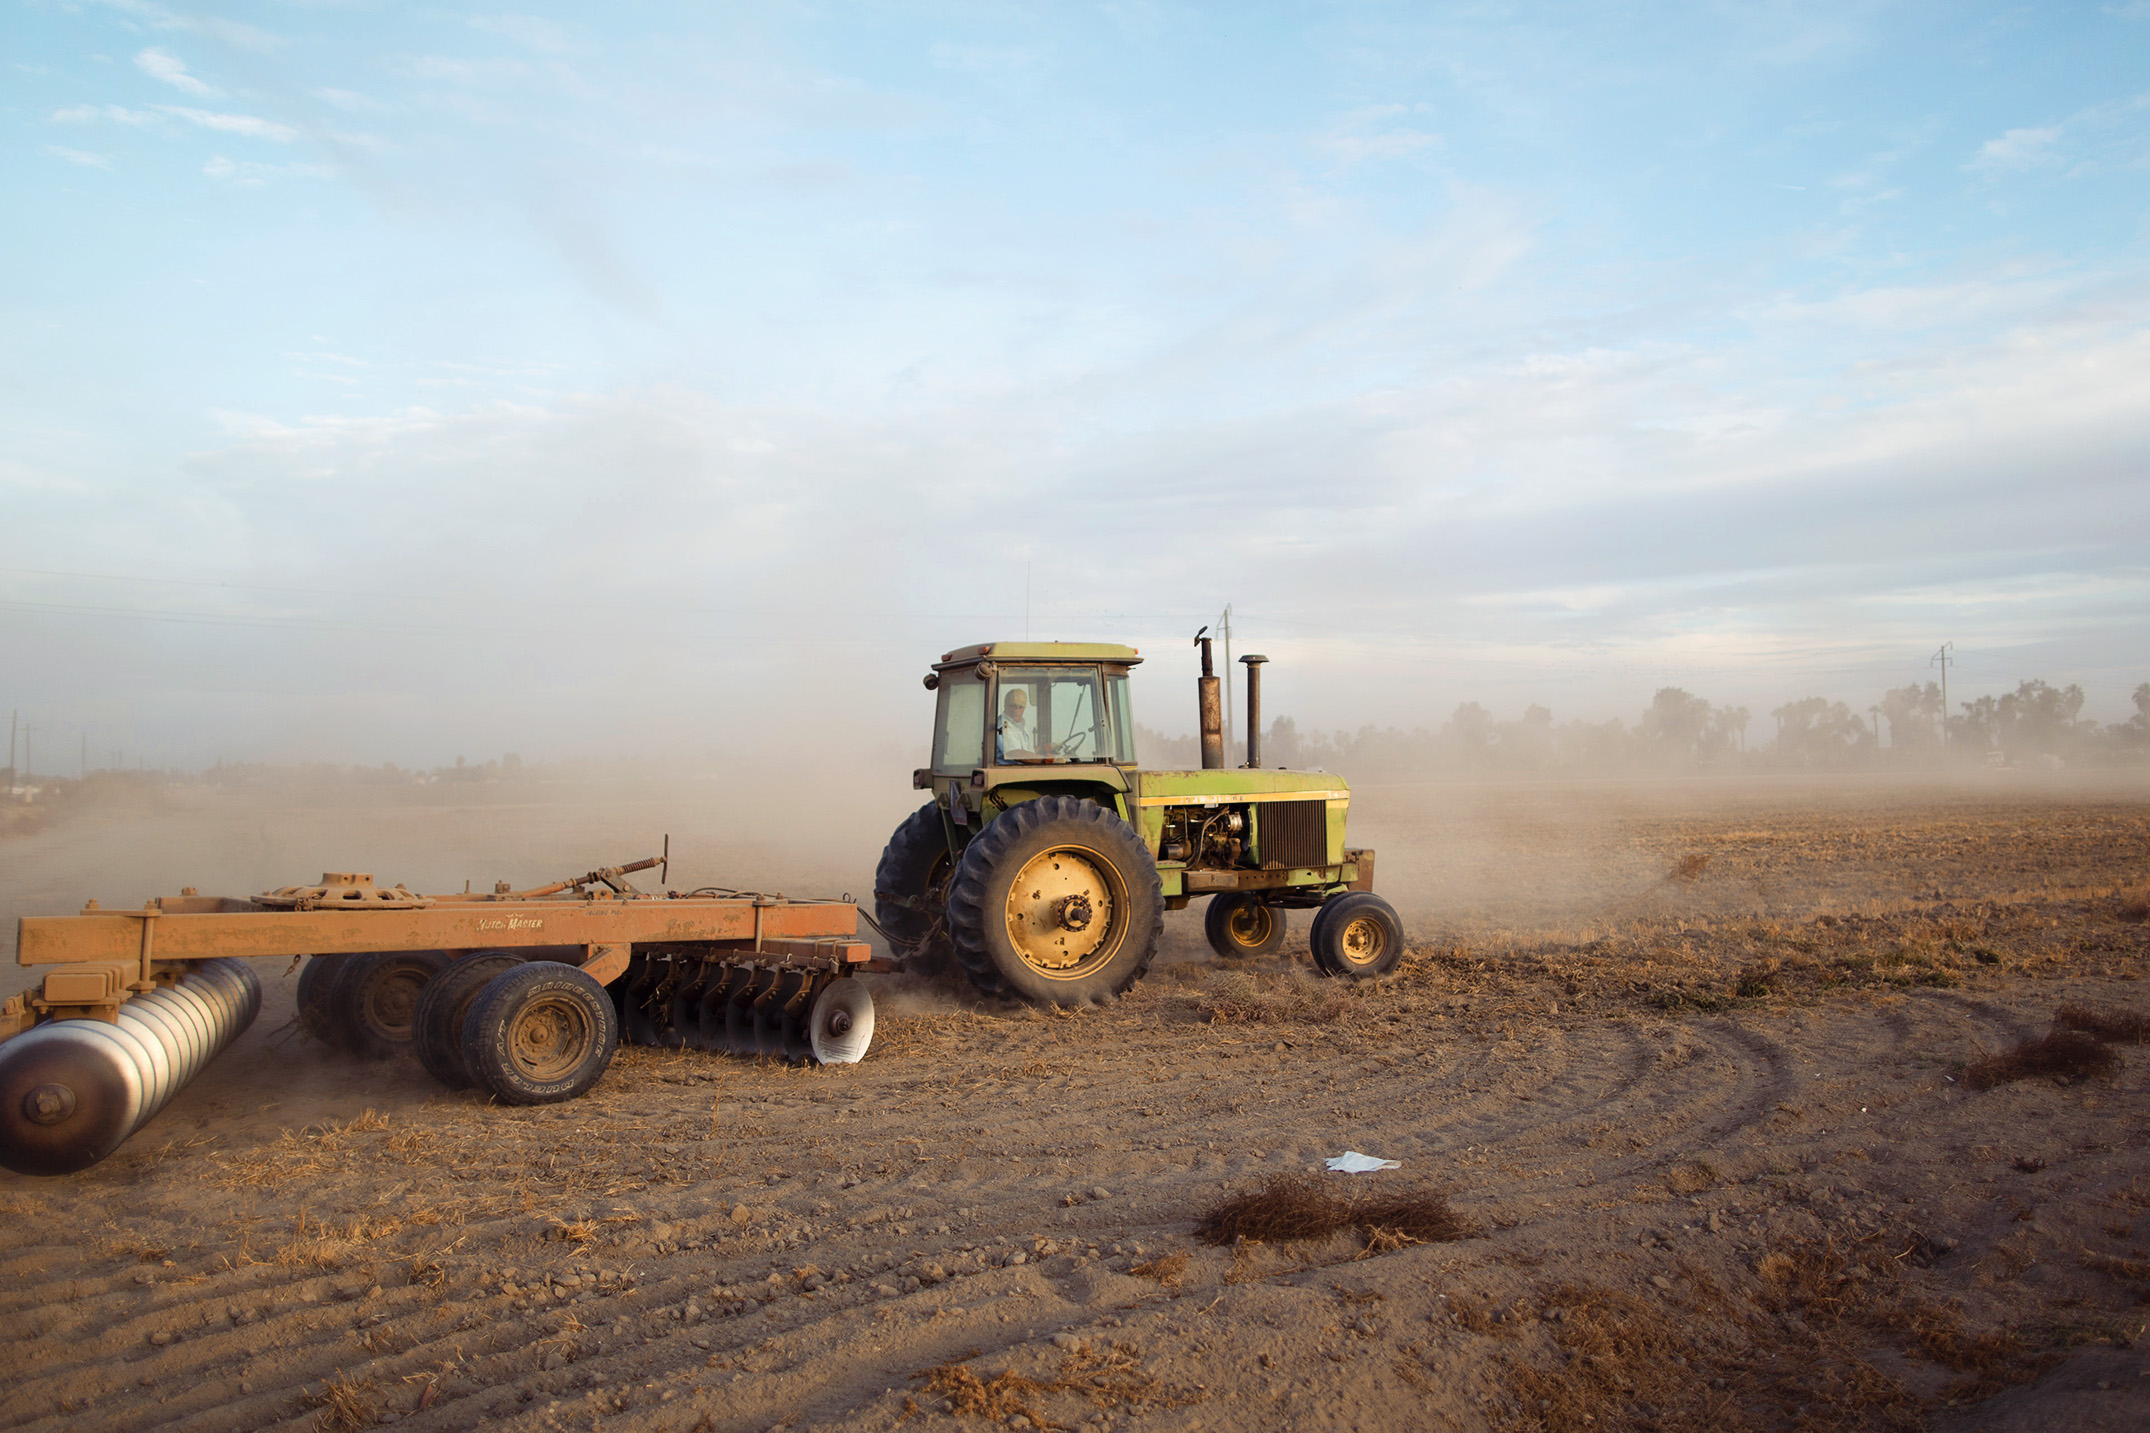 Mike Kane | Central Valley tractor | Seattle documentary, editorial, and commercial photography